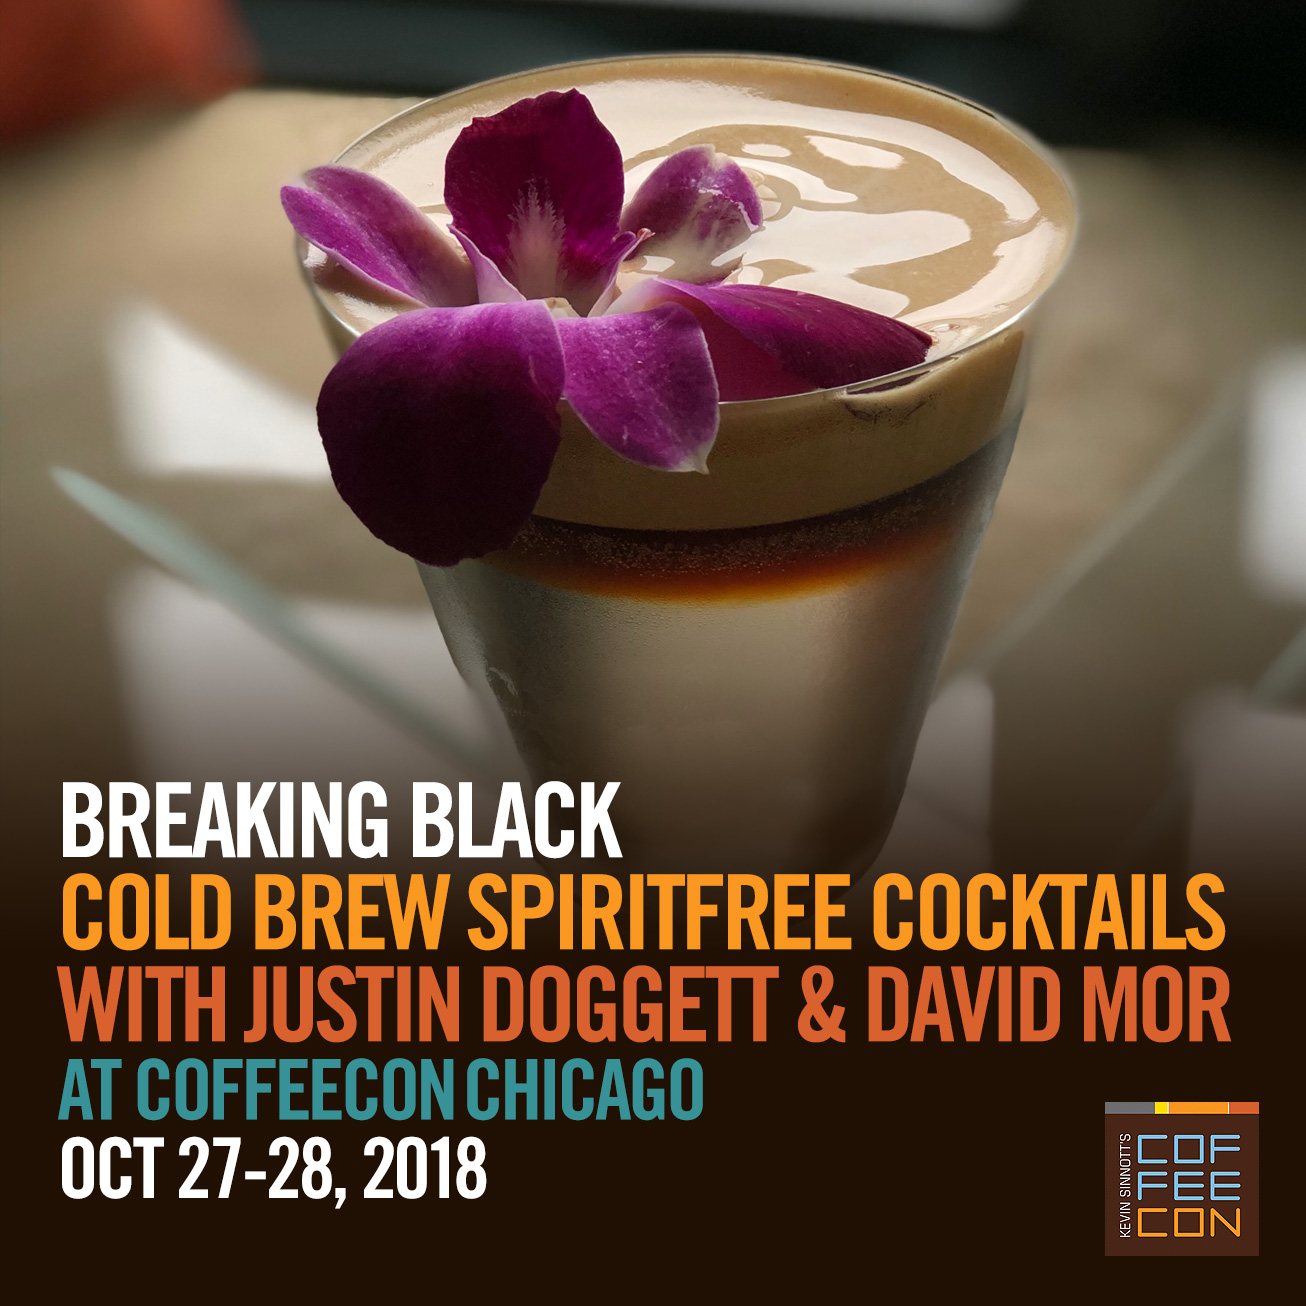 Breaking Black Spiritfree Cocktails at CoffeeConChi 2018